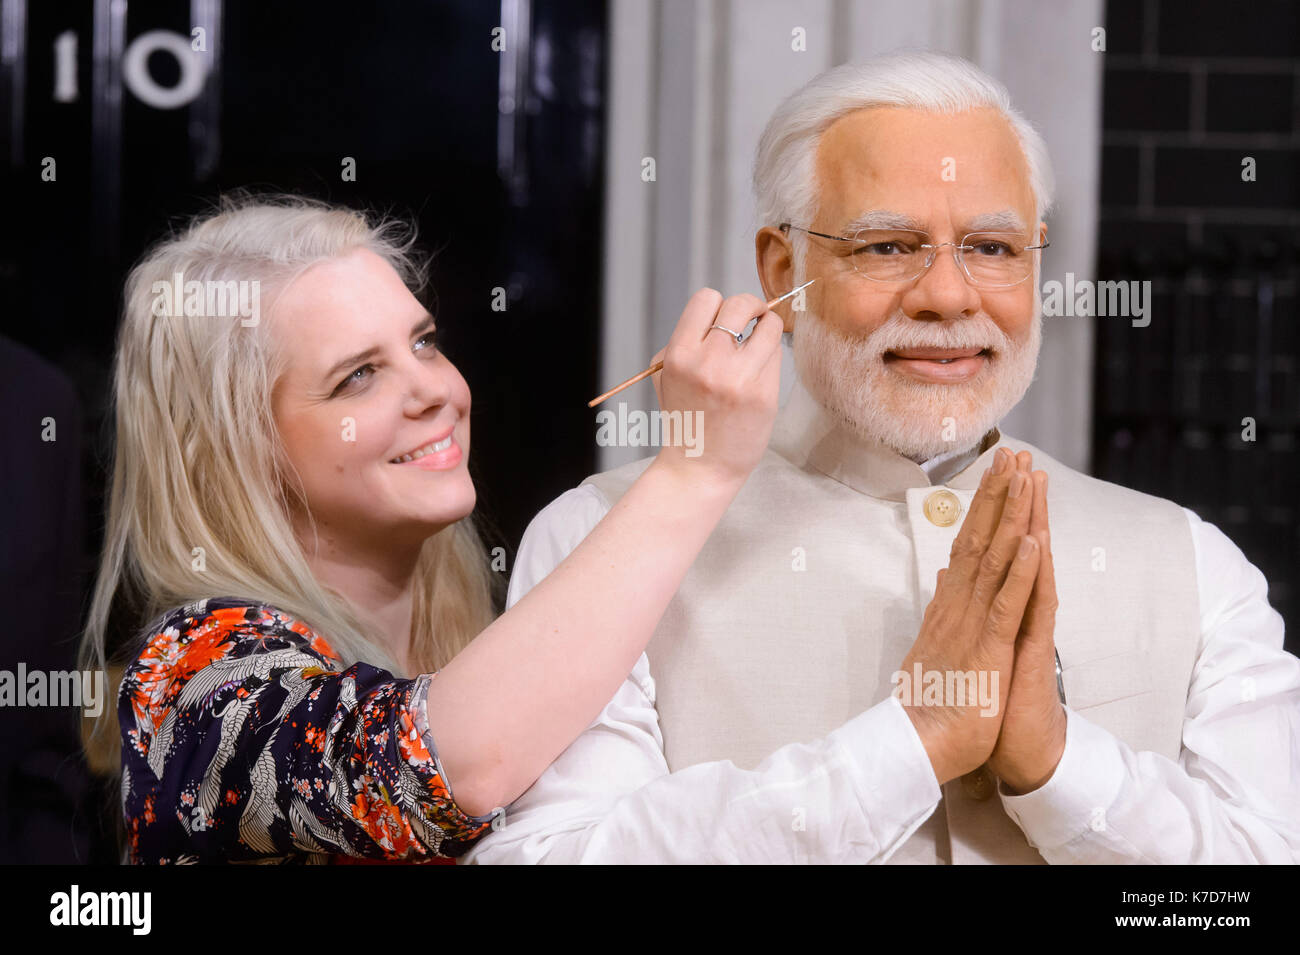 Photo Must Be Credited ©Alpha Press 065630 28/04/2016 Indian Prime Minister, Narendra Modi, this morning took his place alongside other world leaders at Madame Tussaud's London. His new wax figure today arrived at the Baker Street attraction fresh from Delhi, where Mr Modi had a private viewing with his likeness last week.  Madame Tussauds studio artist, Rebecca Ozkural puts the finishing touches to the figure. - Stock Image